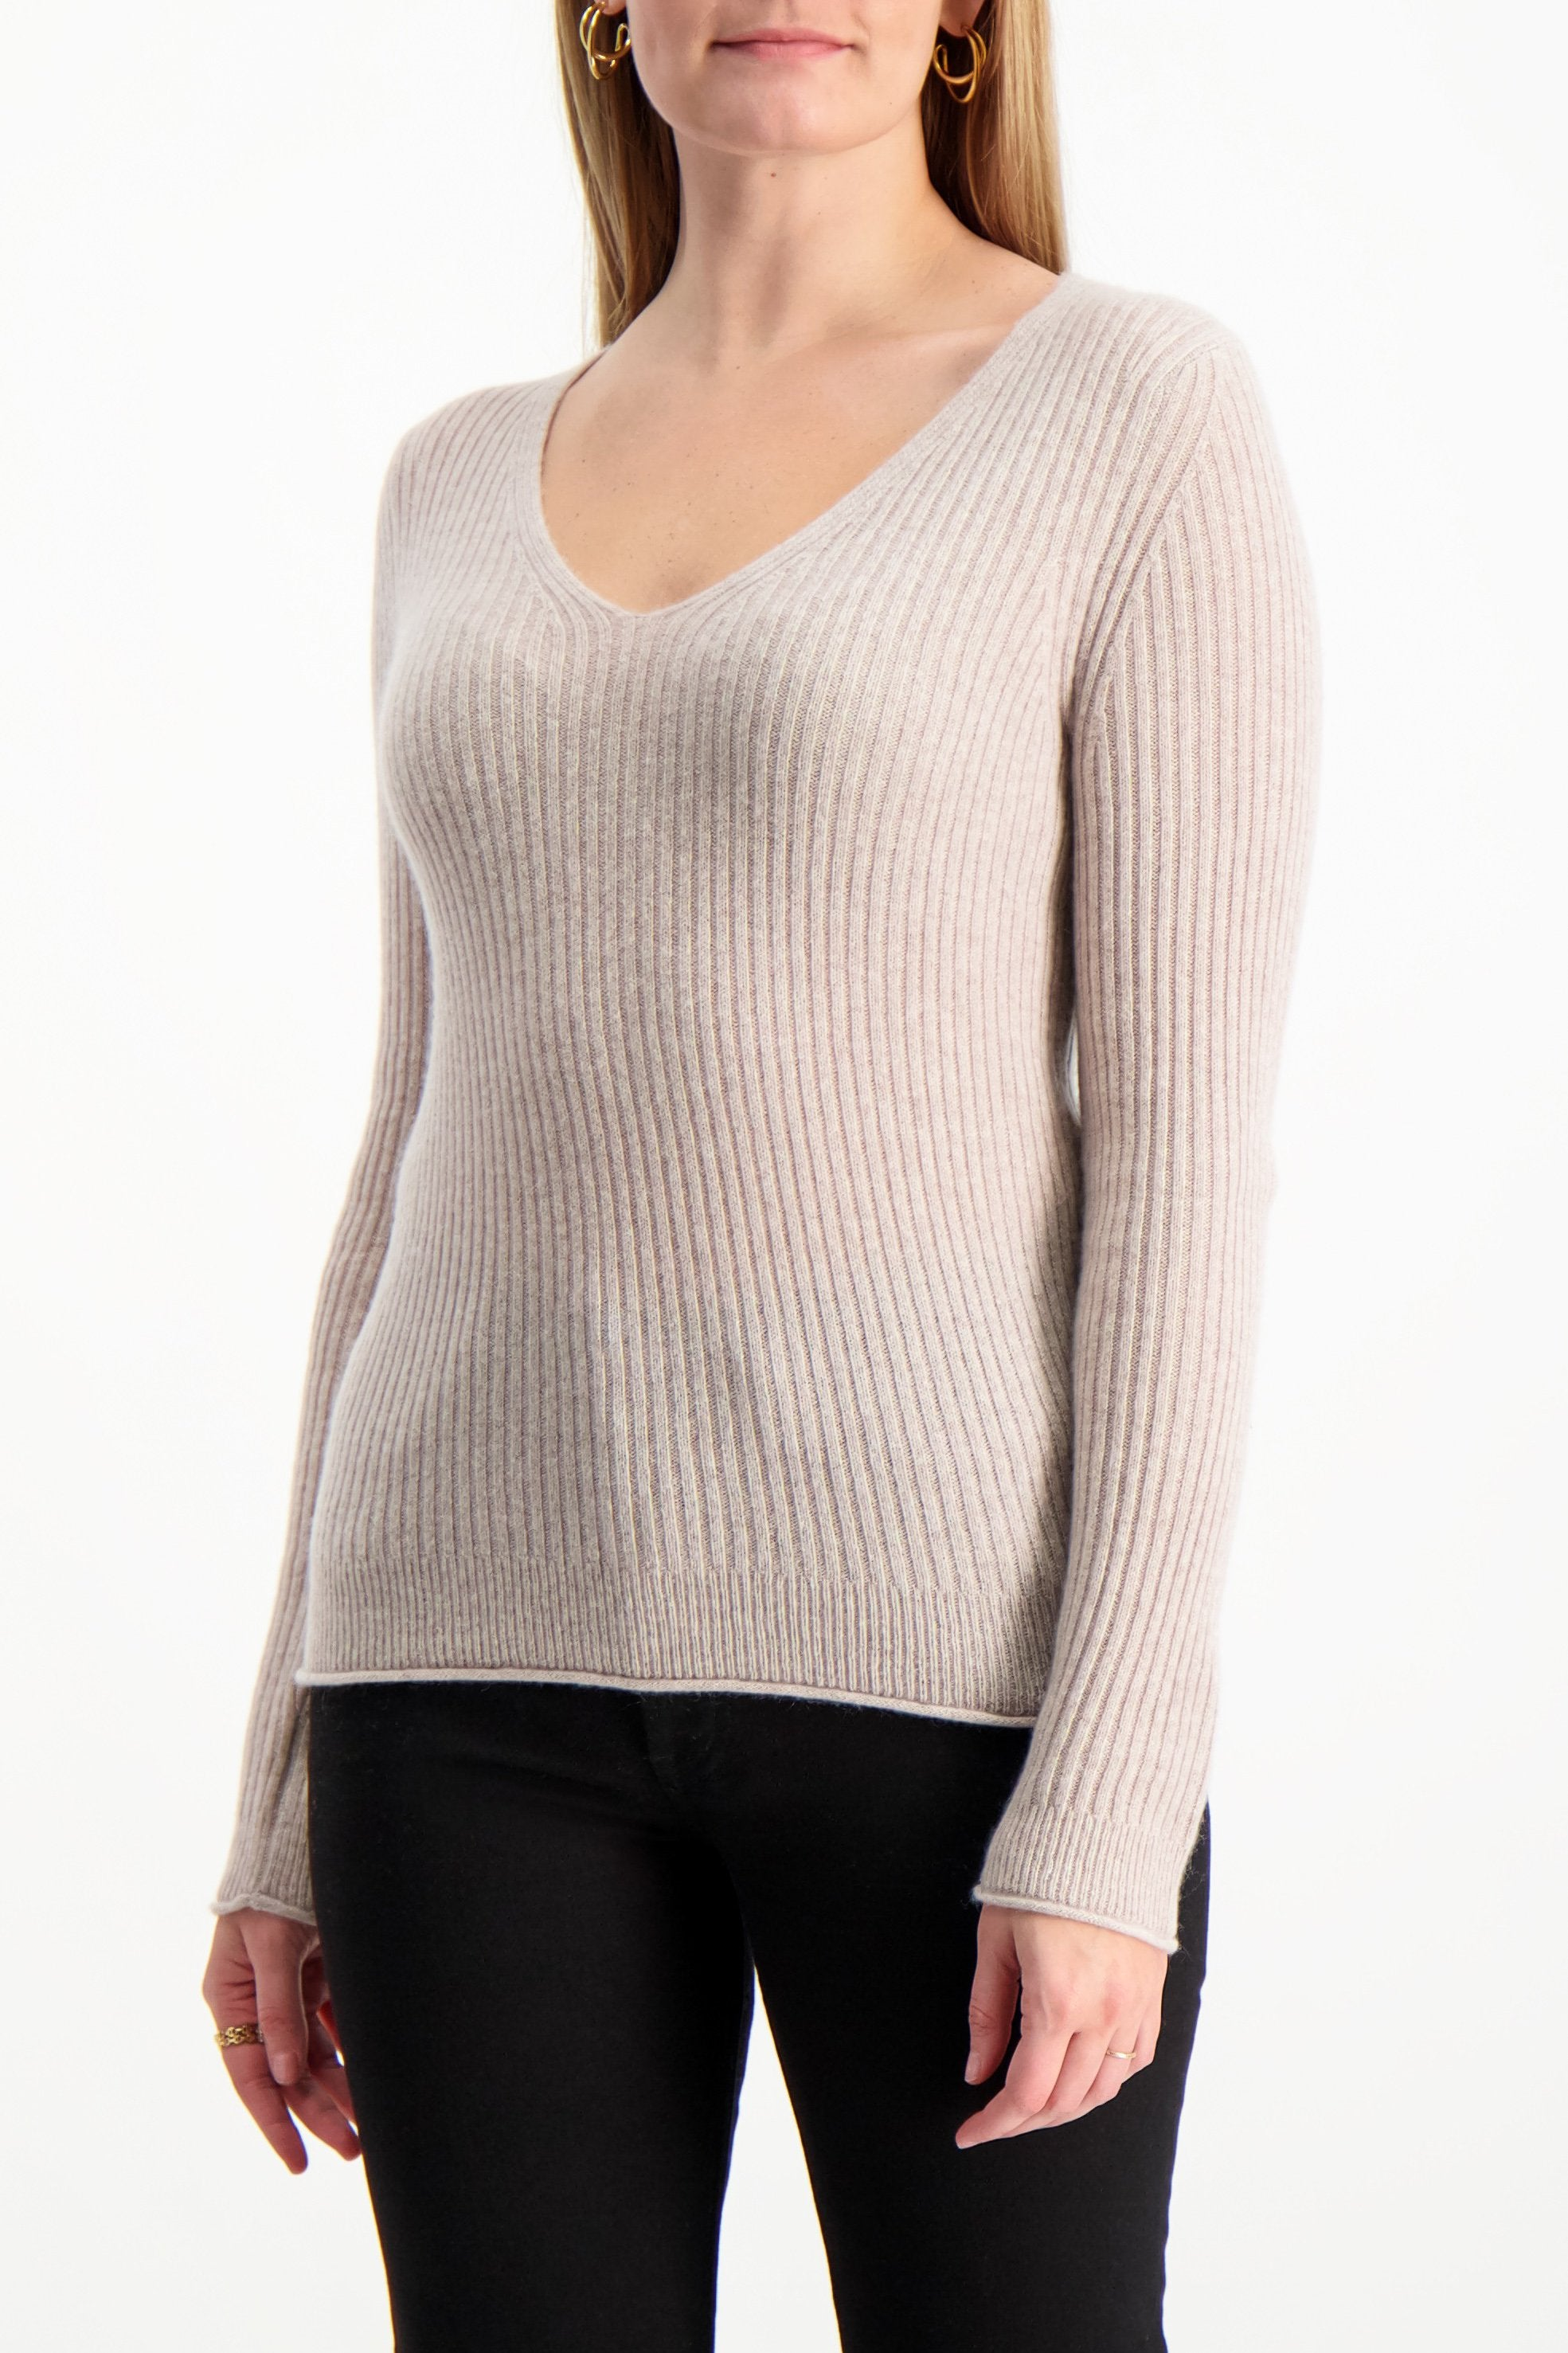 Front Crop Image Of Model Wearing White & Warren Slim Ribbed V Neck Sweater Truffle Heather